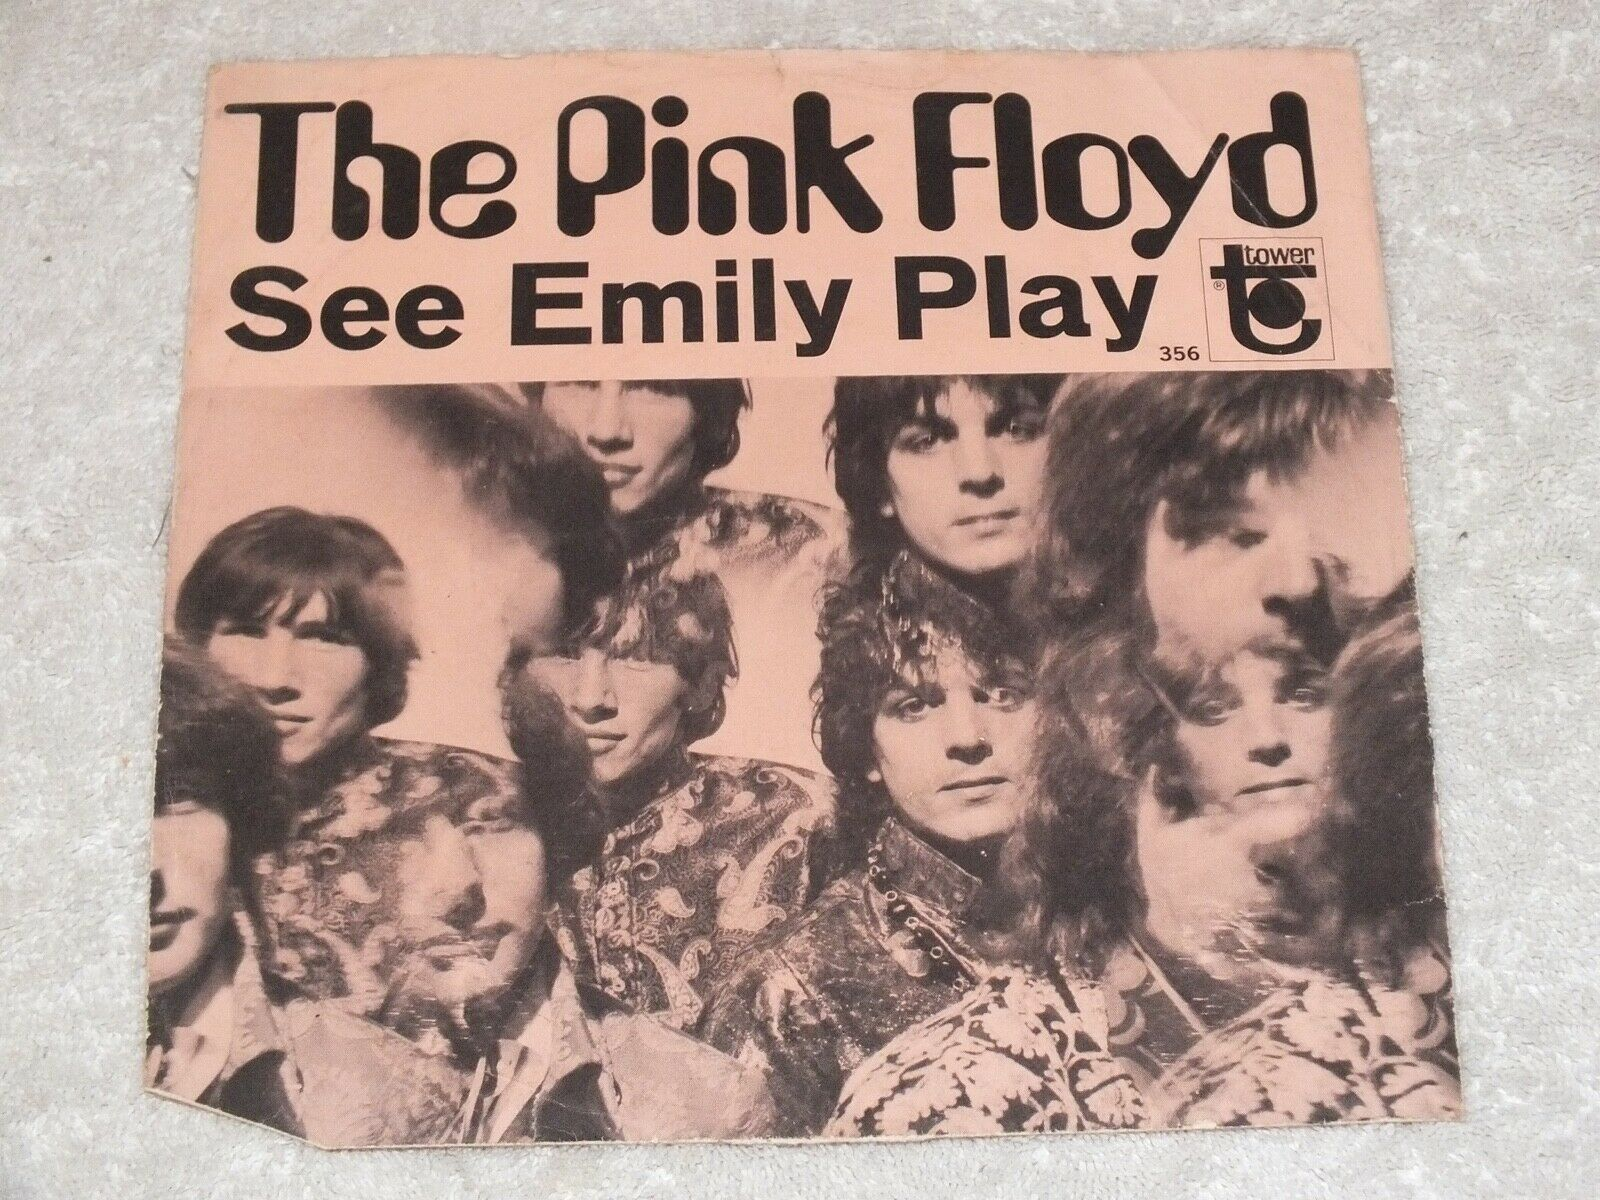 Pink Floyd - See Emily Play - U.S. First issue Promo - Excellent - Listen